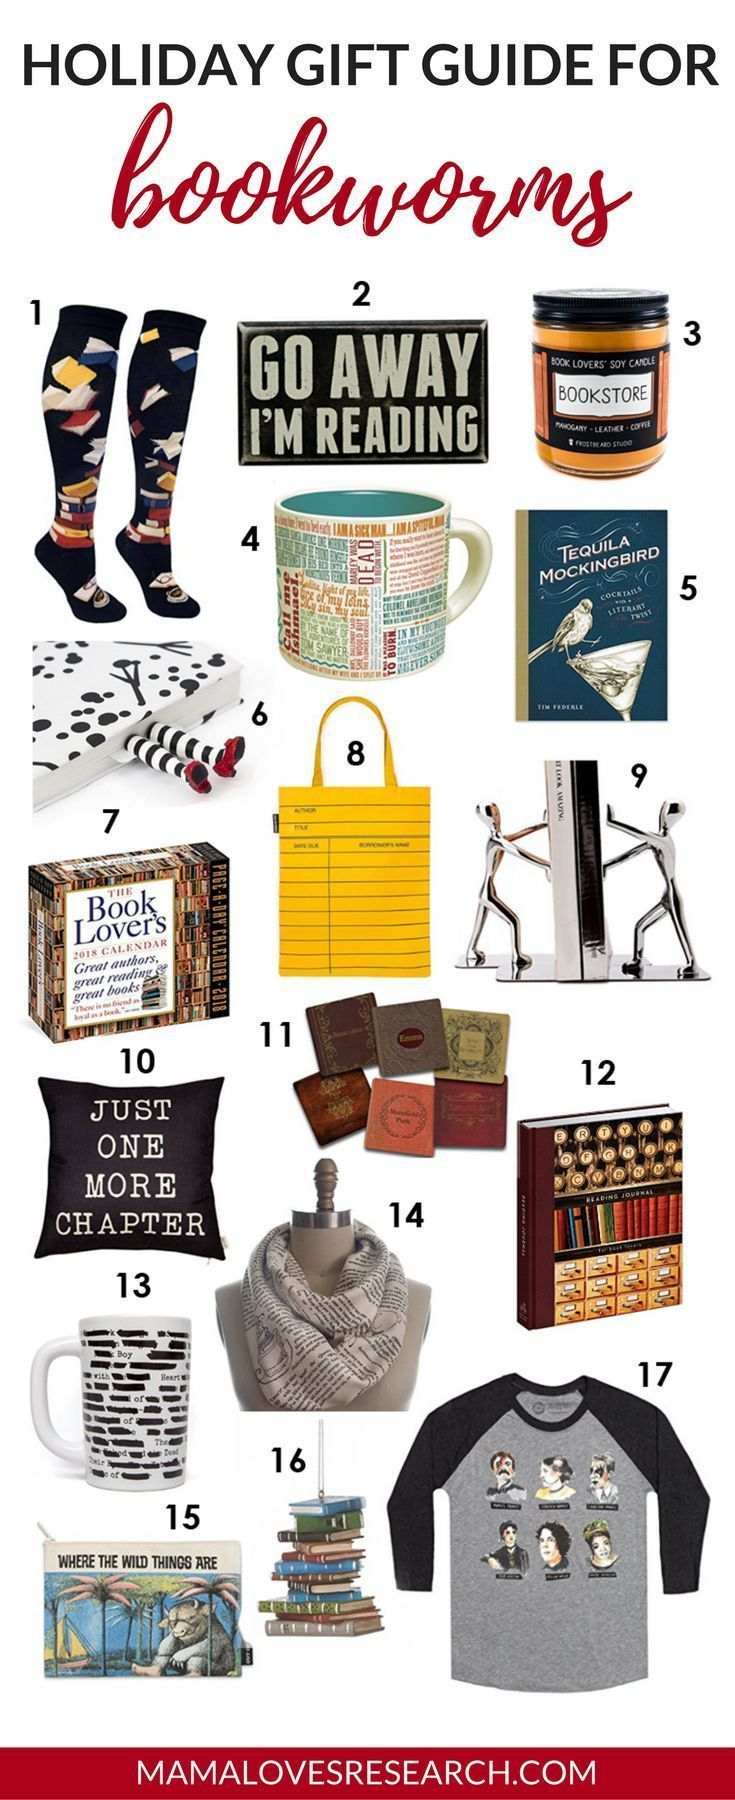 Holiday Gift Guide for Bookworms  Mama Loves Research#Gift#Ideas#GirlFriend